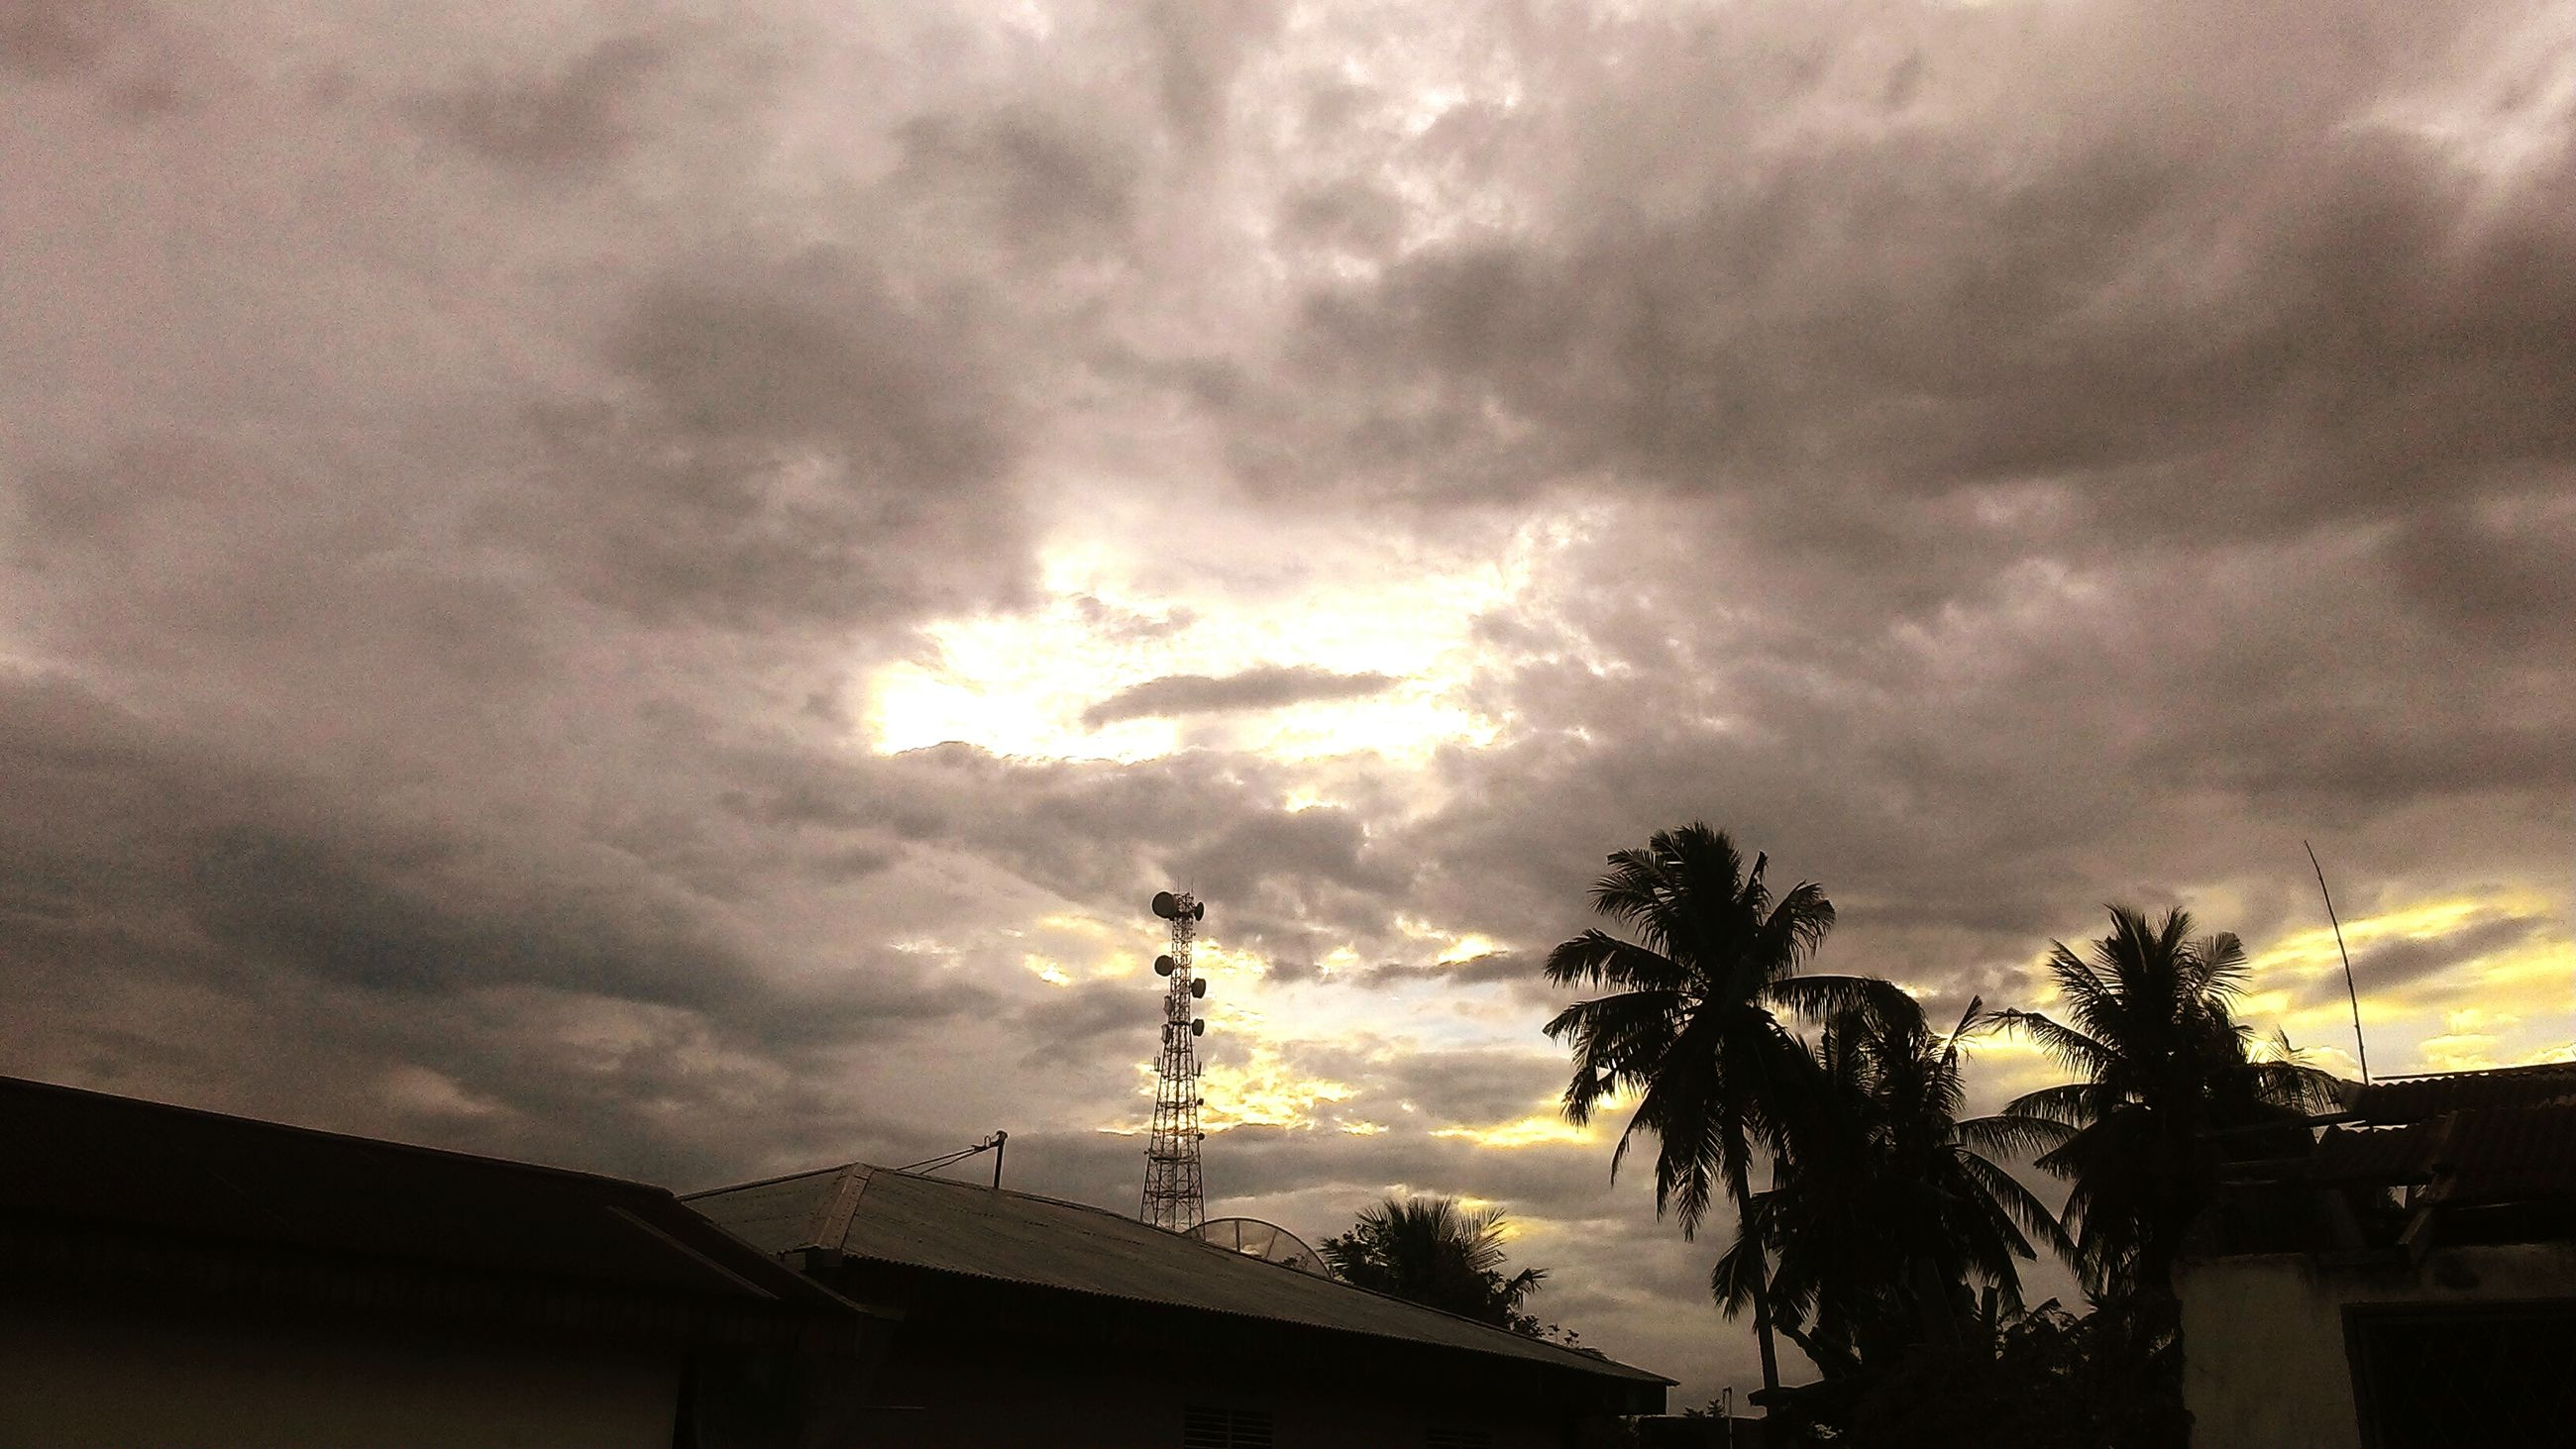 sunset, sky, cloud - sky, silhouette, tree, dramatic sky, nature, beauty in nature, palm tree, no people, outdoors, scenics, storm cloud, day